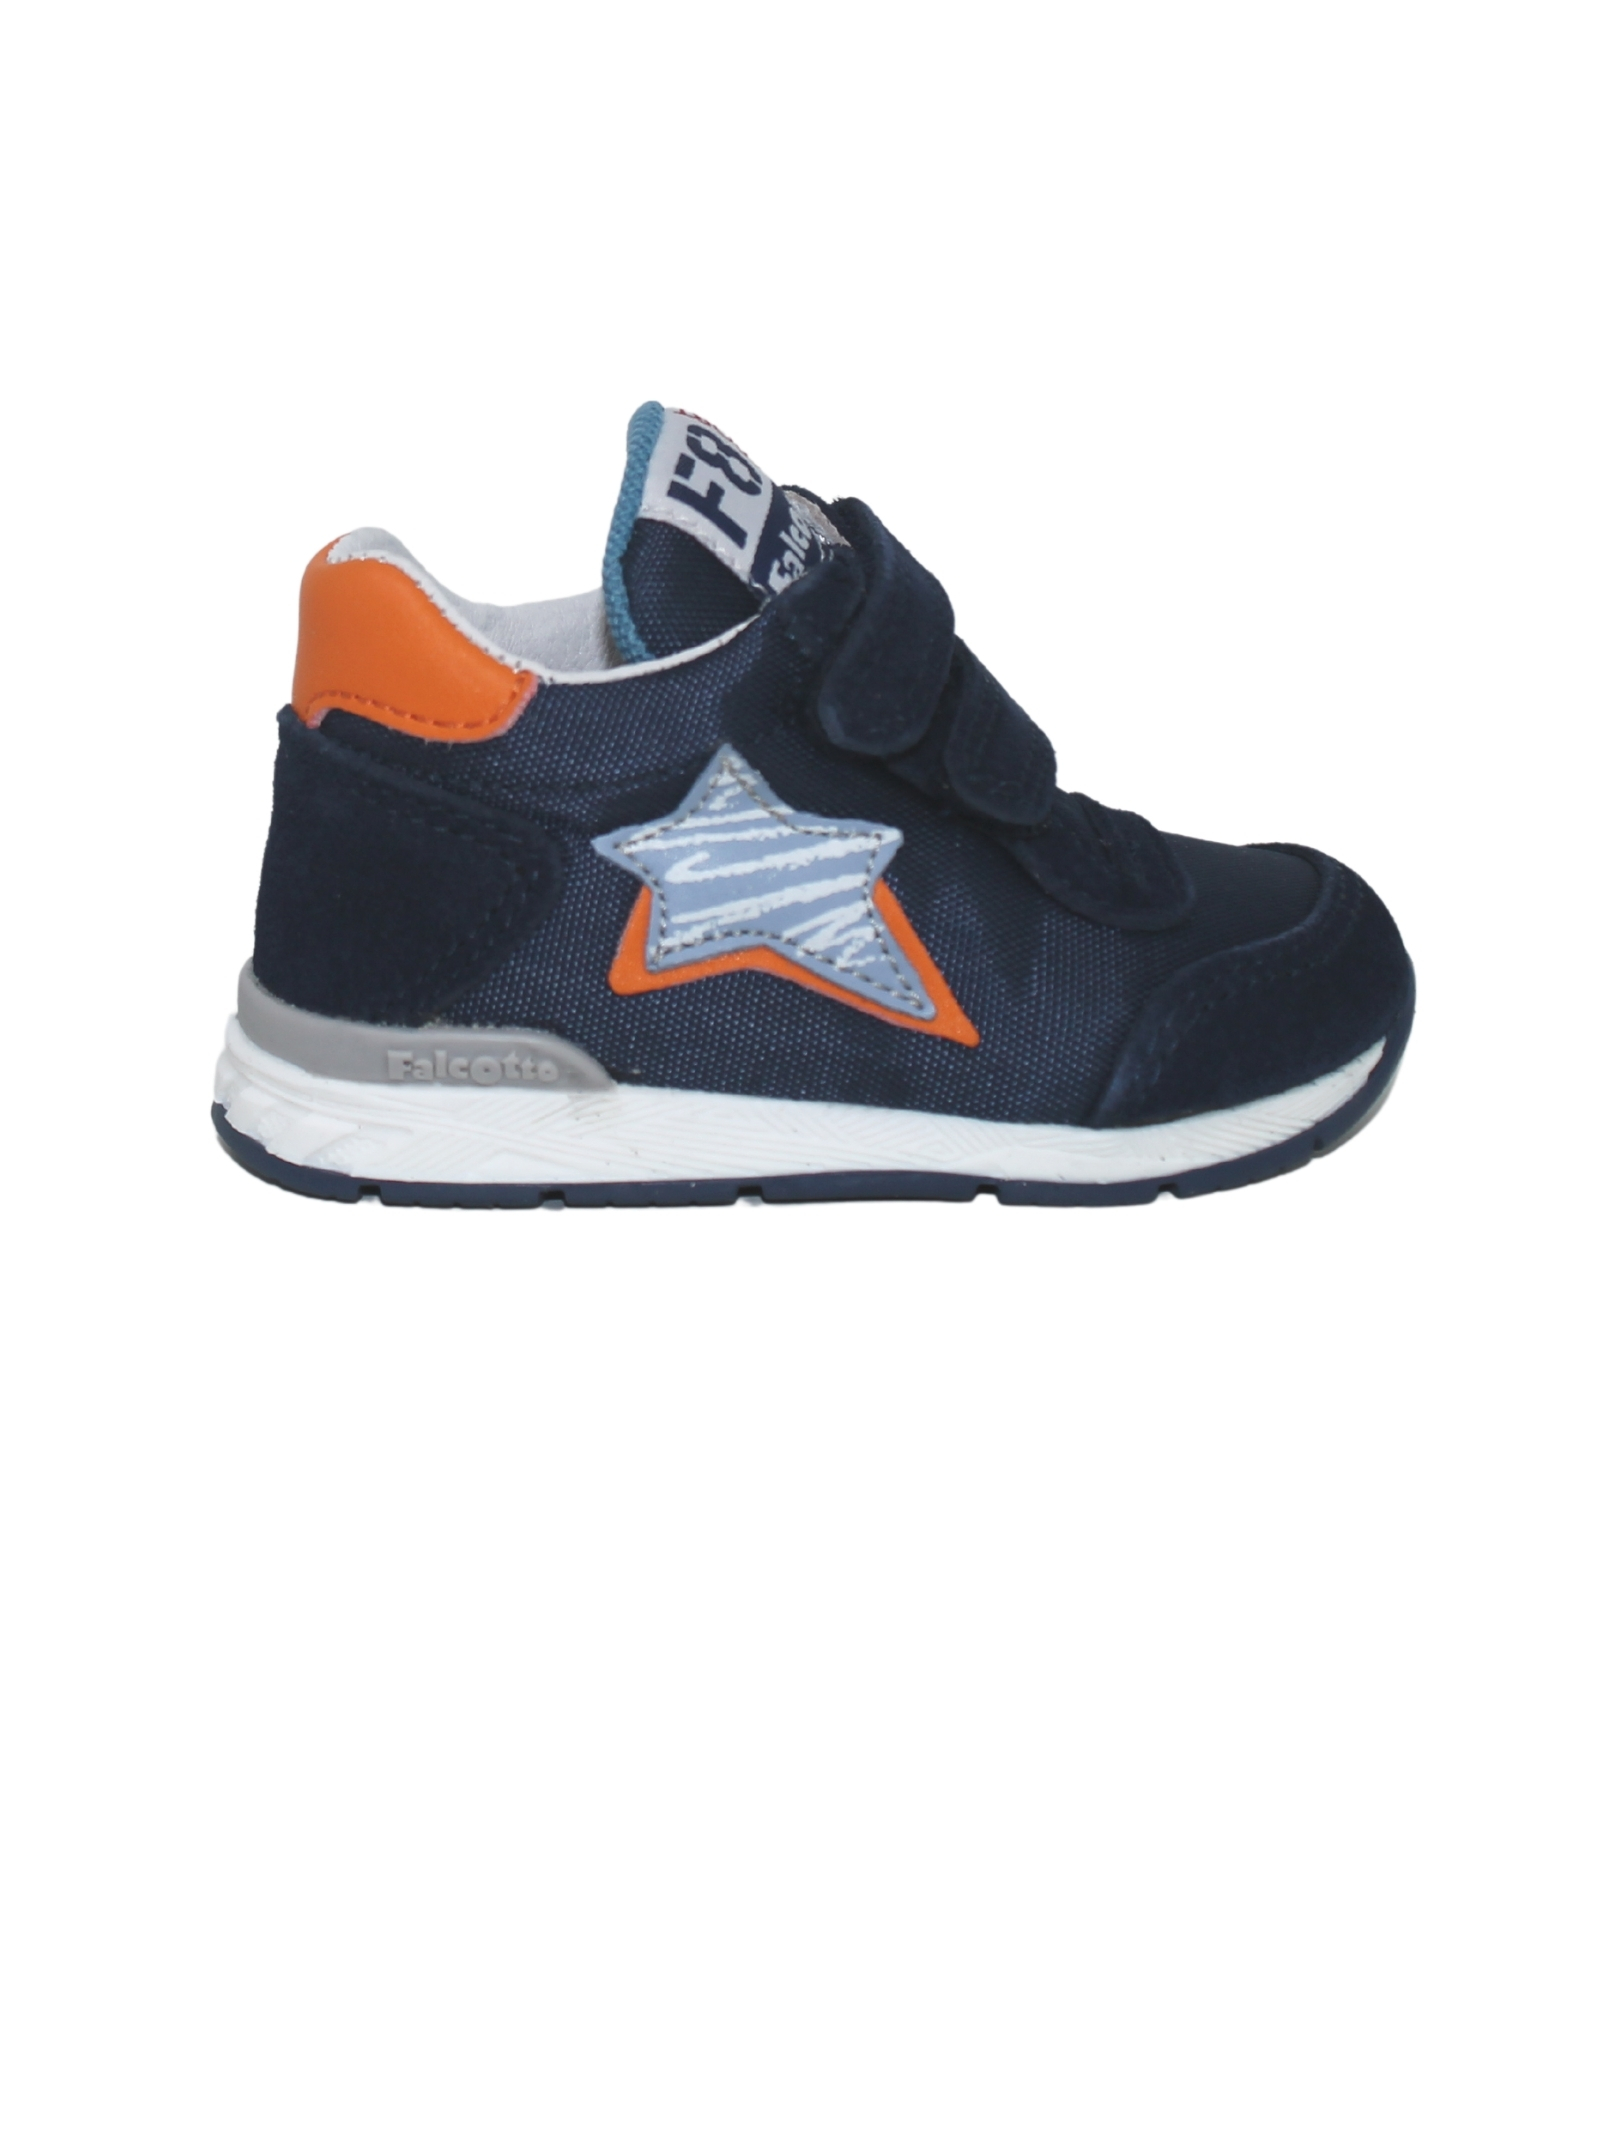 Fantasy Stars Sneakers Child FALCOTTO | Sneakers | 0012015873040C02NAVY